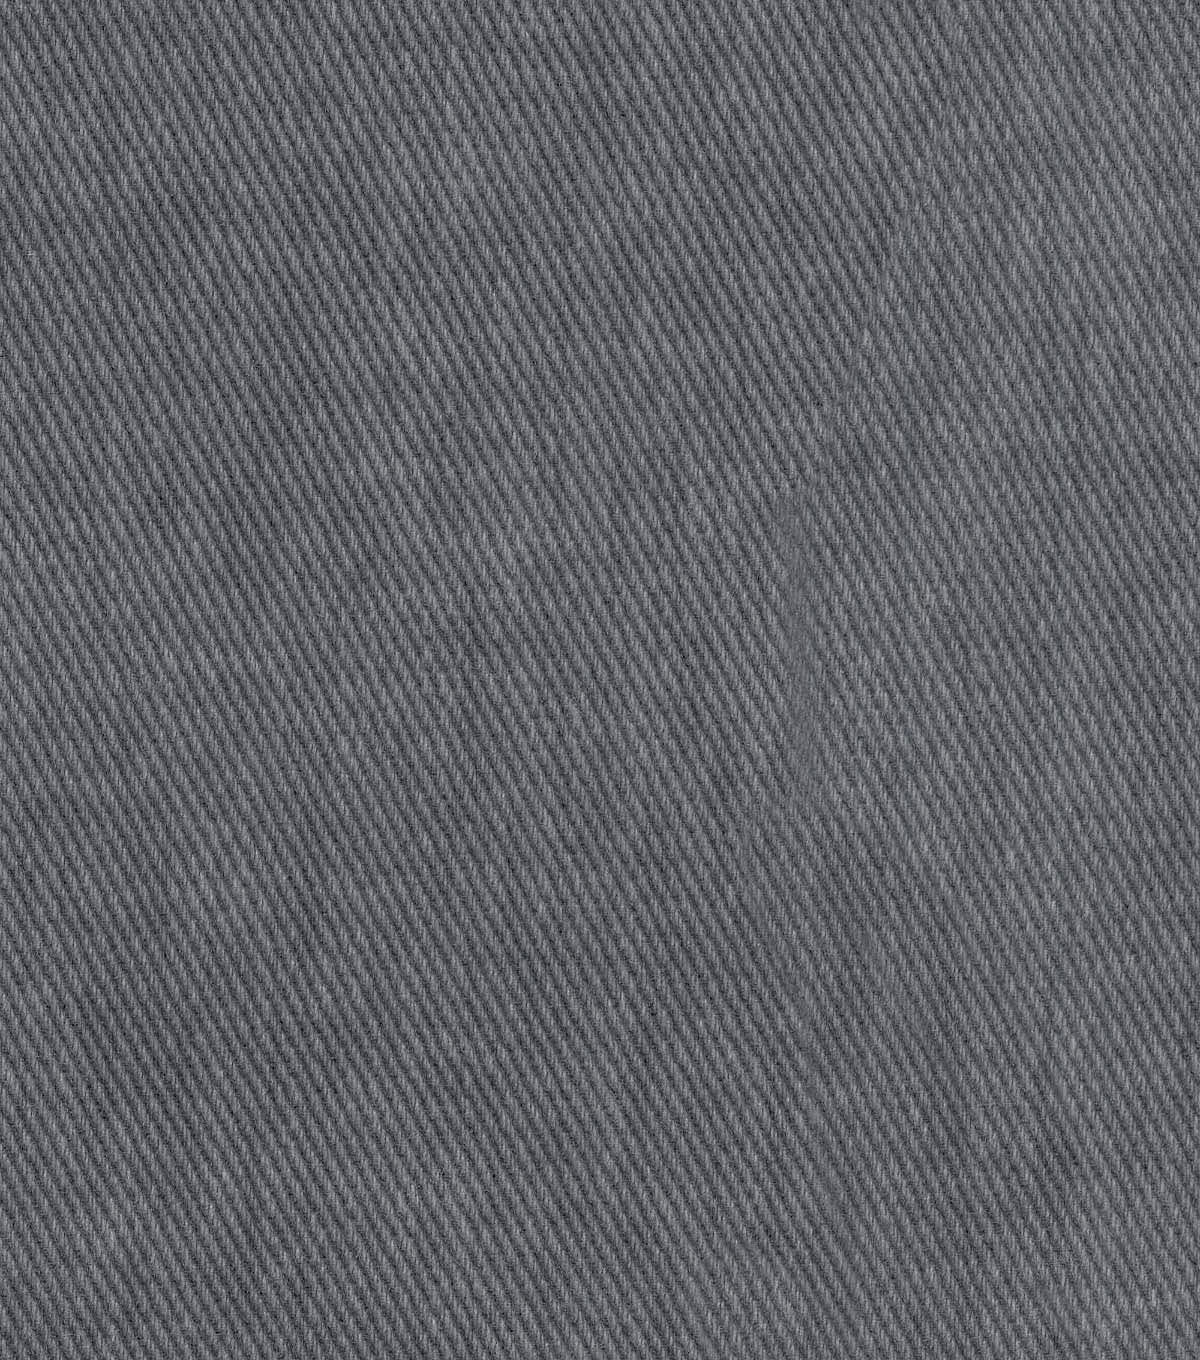 PKL Studio Upholstery Decor Fabric-Stormfront Graphite